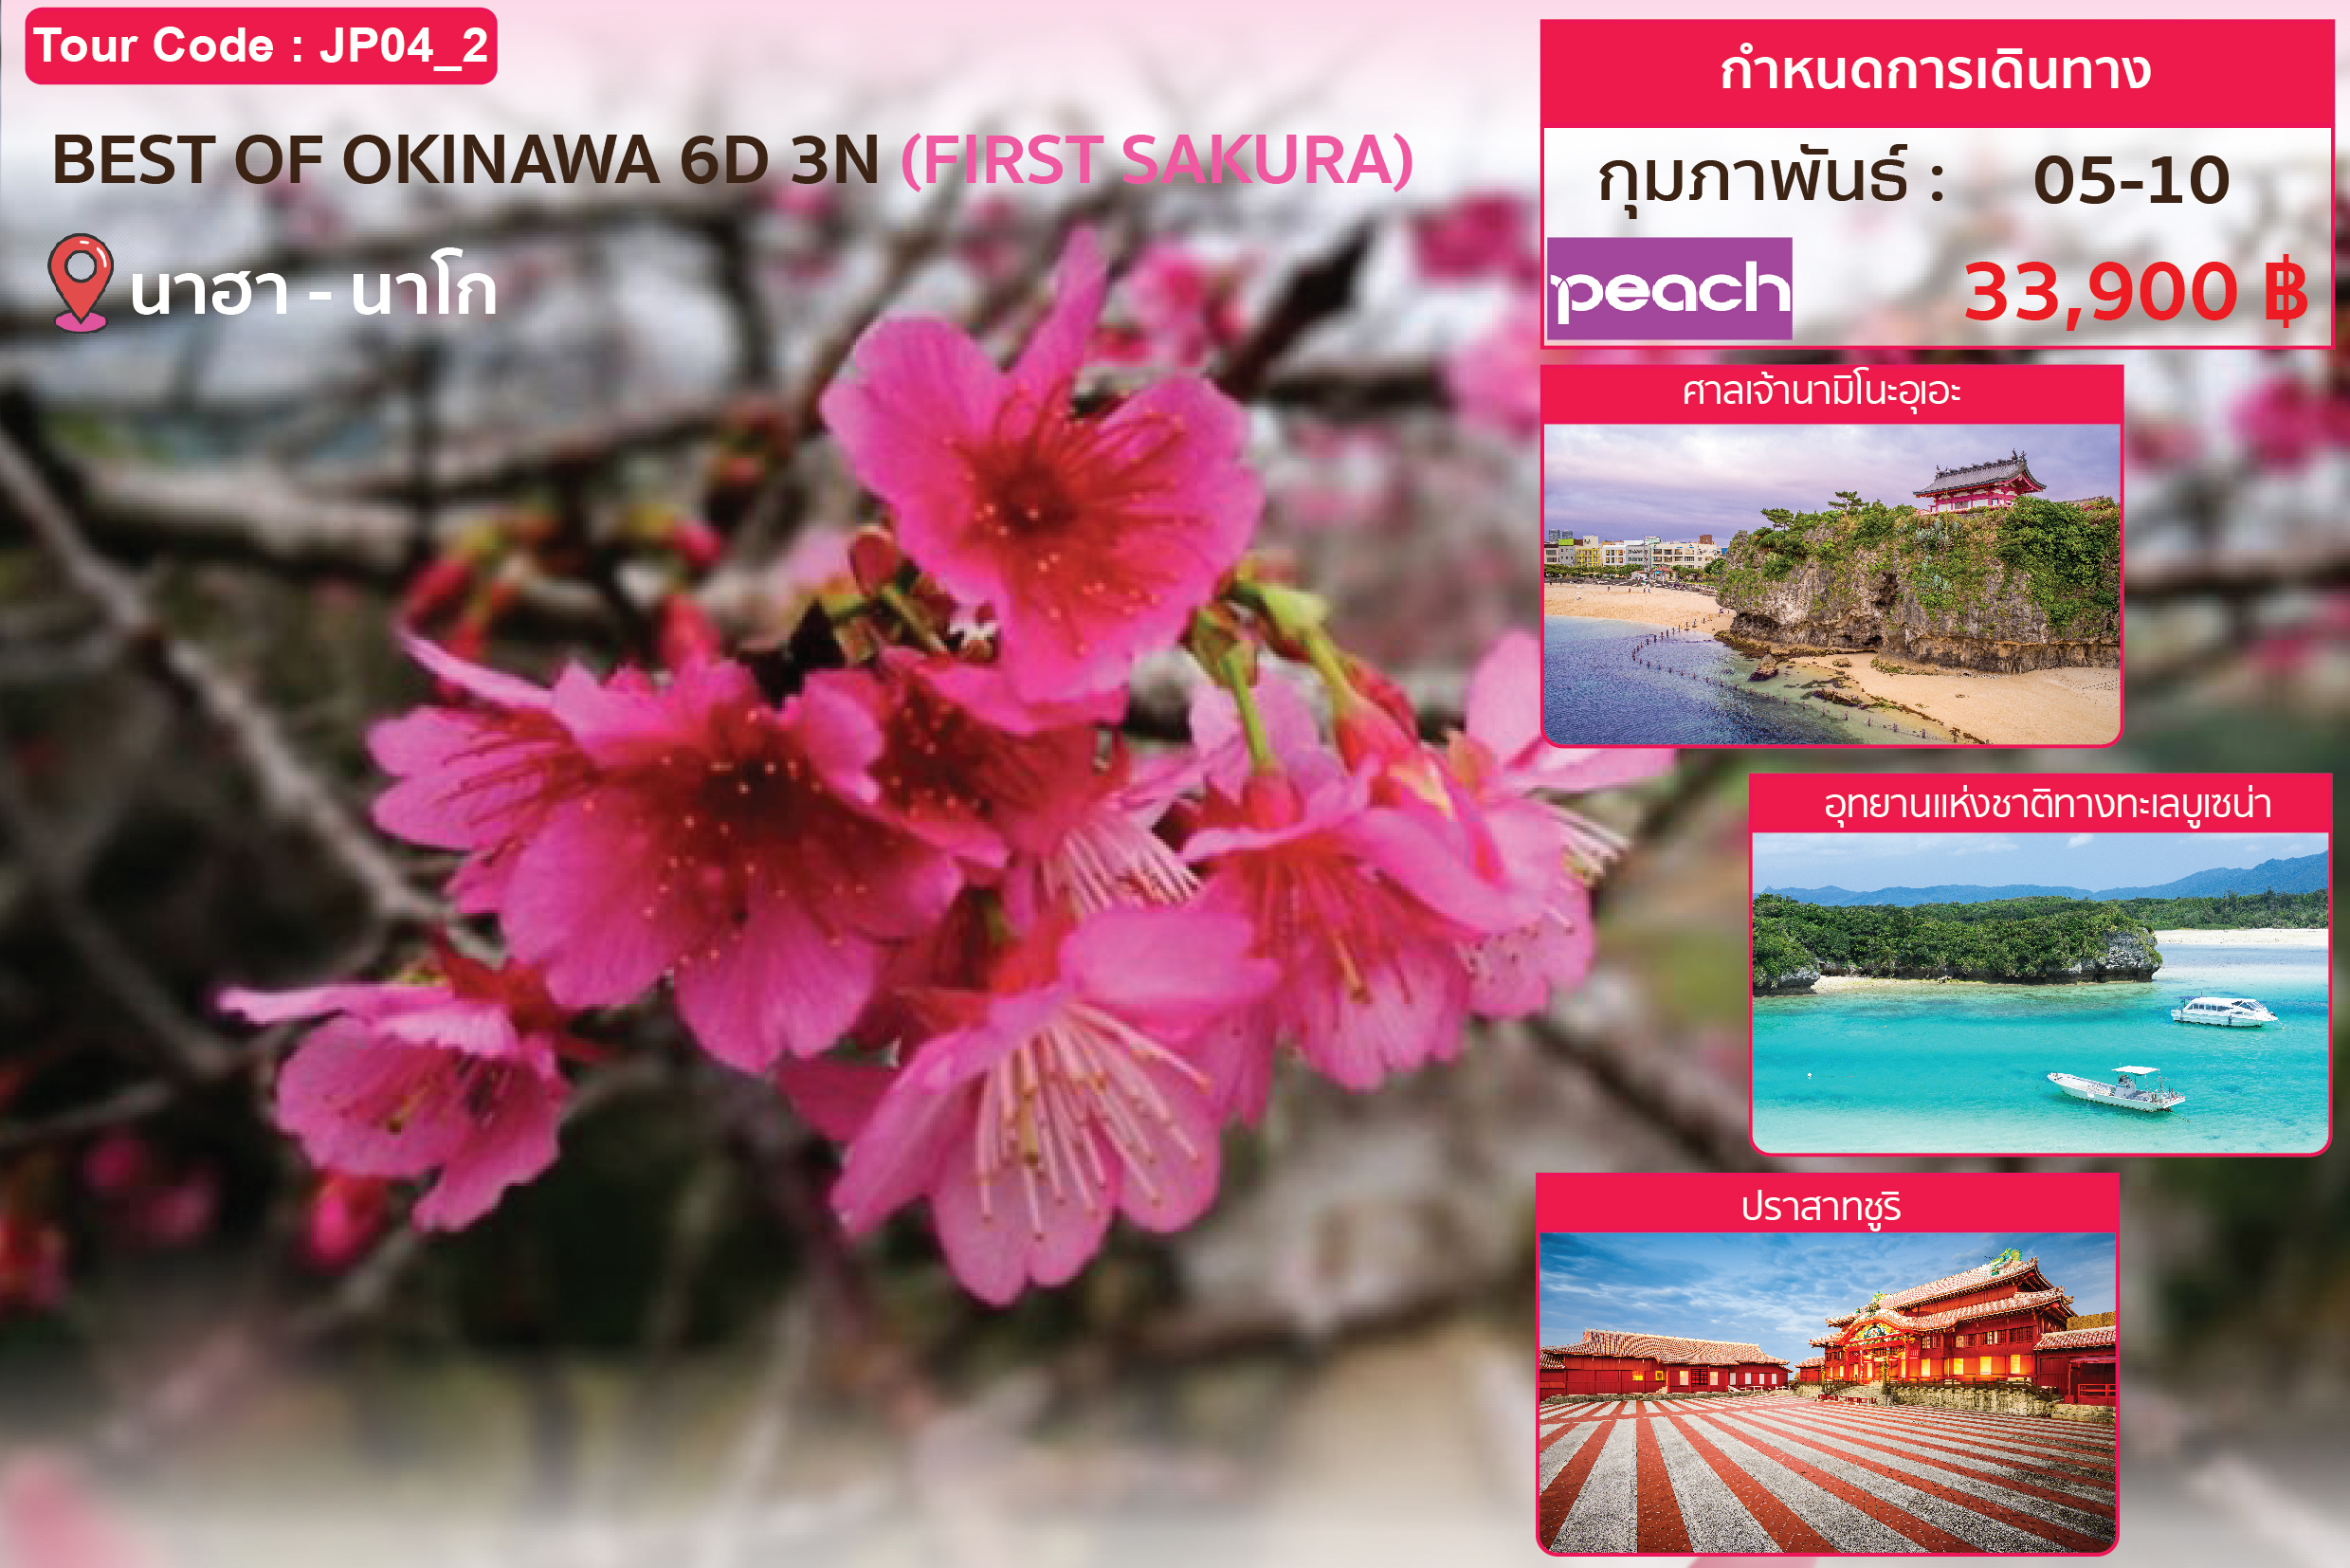 Best of Okinawa 6Days 3Nights 6 วัน 3 คืน